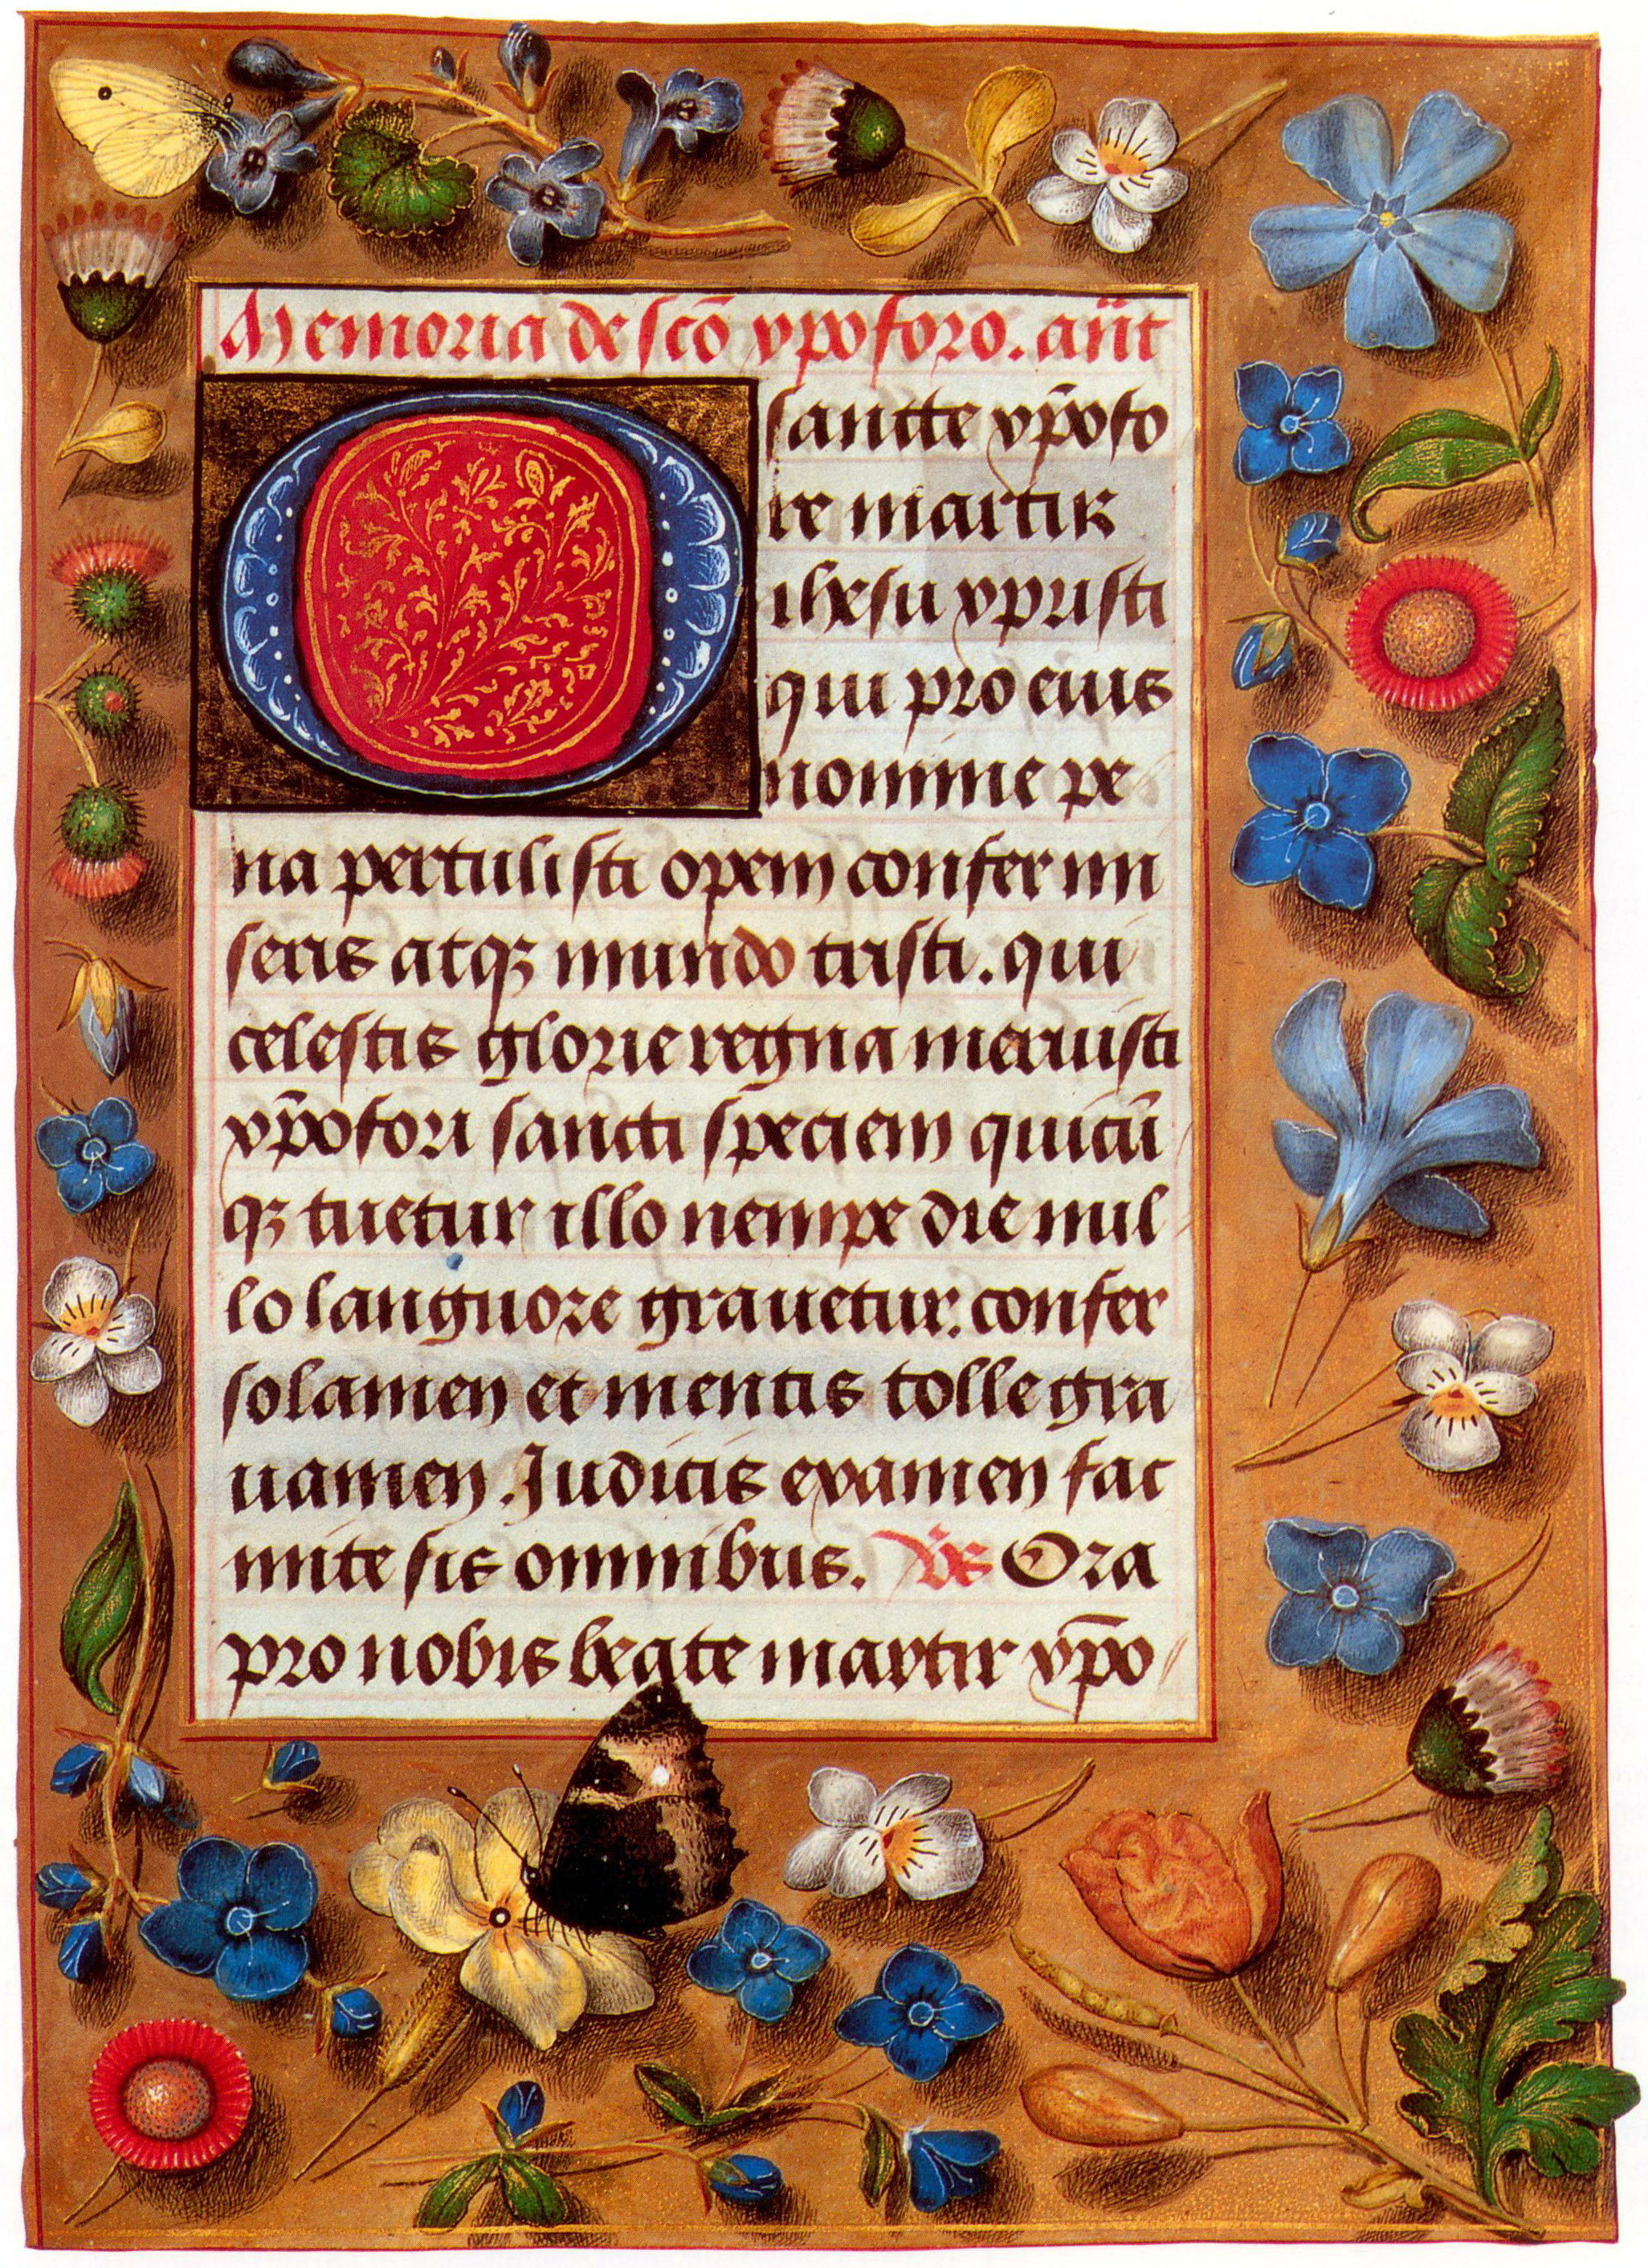 The lavish illusionistic borders of this Flemish book of hours from the late 1470s are typical of luxury books of this period, which were now often decorated on every page. The butterfly wing cutting into the text area is an example of playing with visual conventions, typical of the period. Among the plants are the Veronica, Vinca, Viola tricolor, Bellis perennis, and Chelidonium majus. The butterfly is Aglais urticae. The Latin text is a devotion to Saint Christopher.